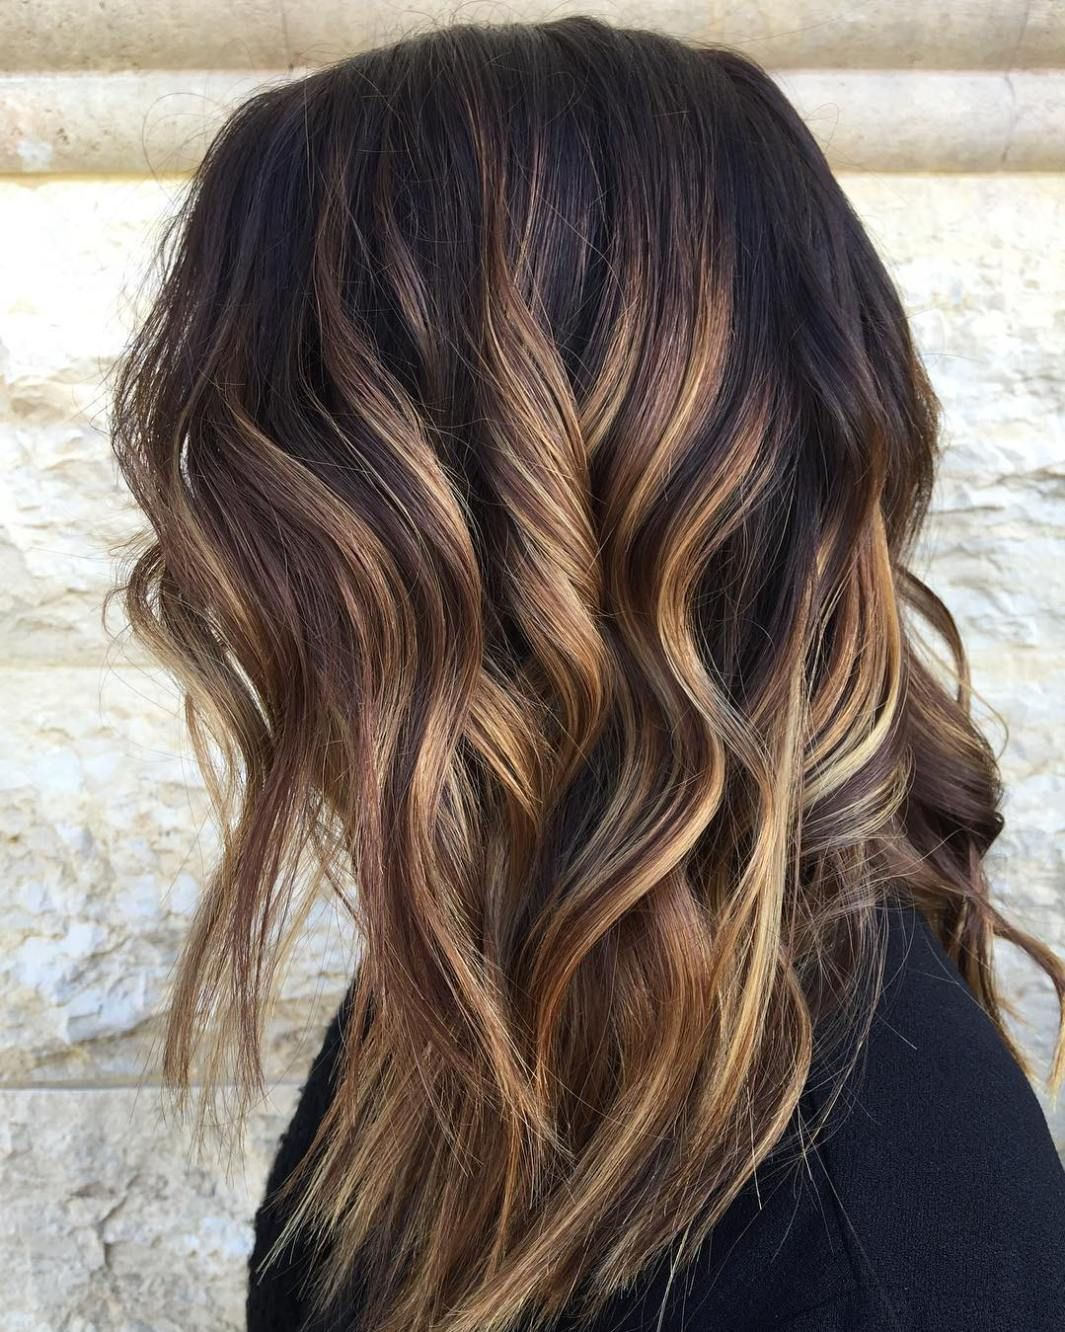 60 Looks with Caramel Highlights on Brown and Dark Brown ... - photo #3